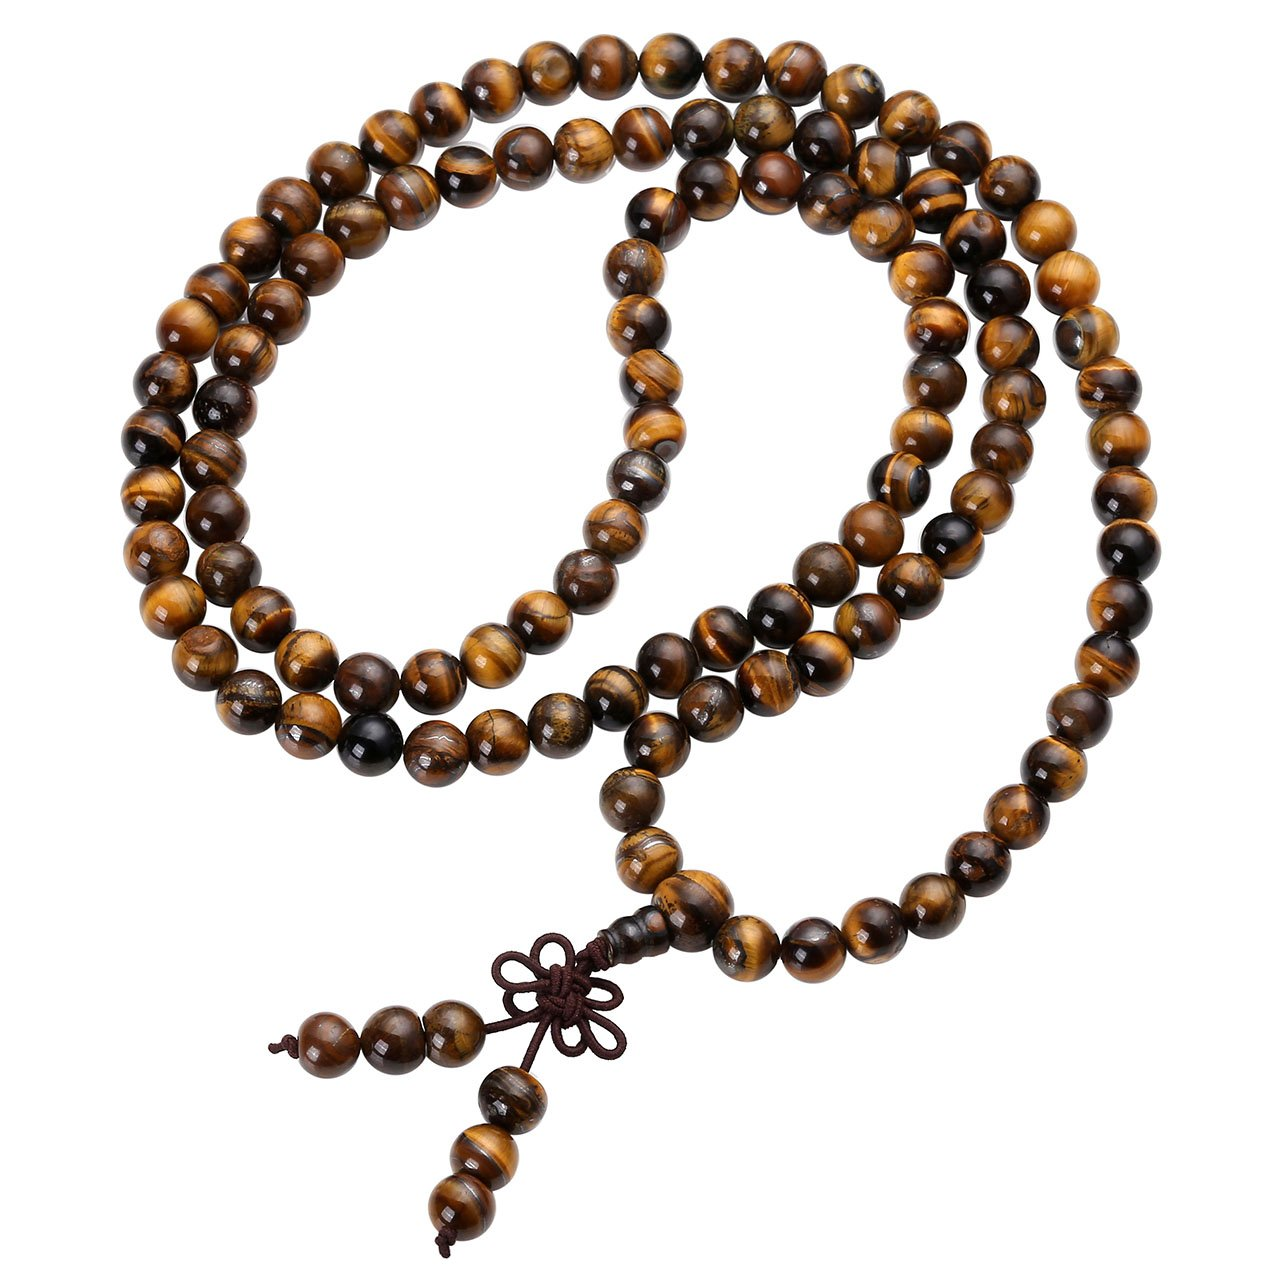 Top Plaza Unisex 108 Natural Gemstone Buddha Prayer Beads Mala Bracelets Buddhist Rosary Necklace(8mm Tiger Eye)